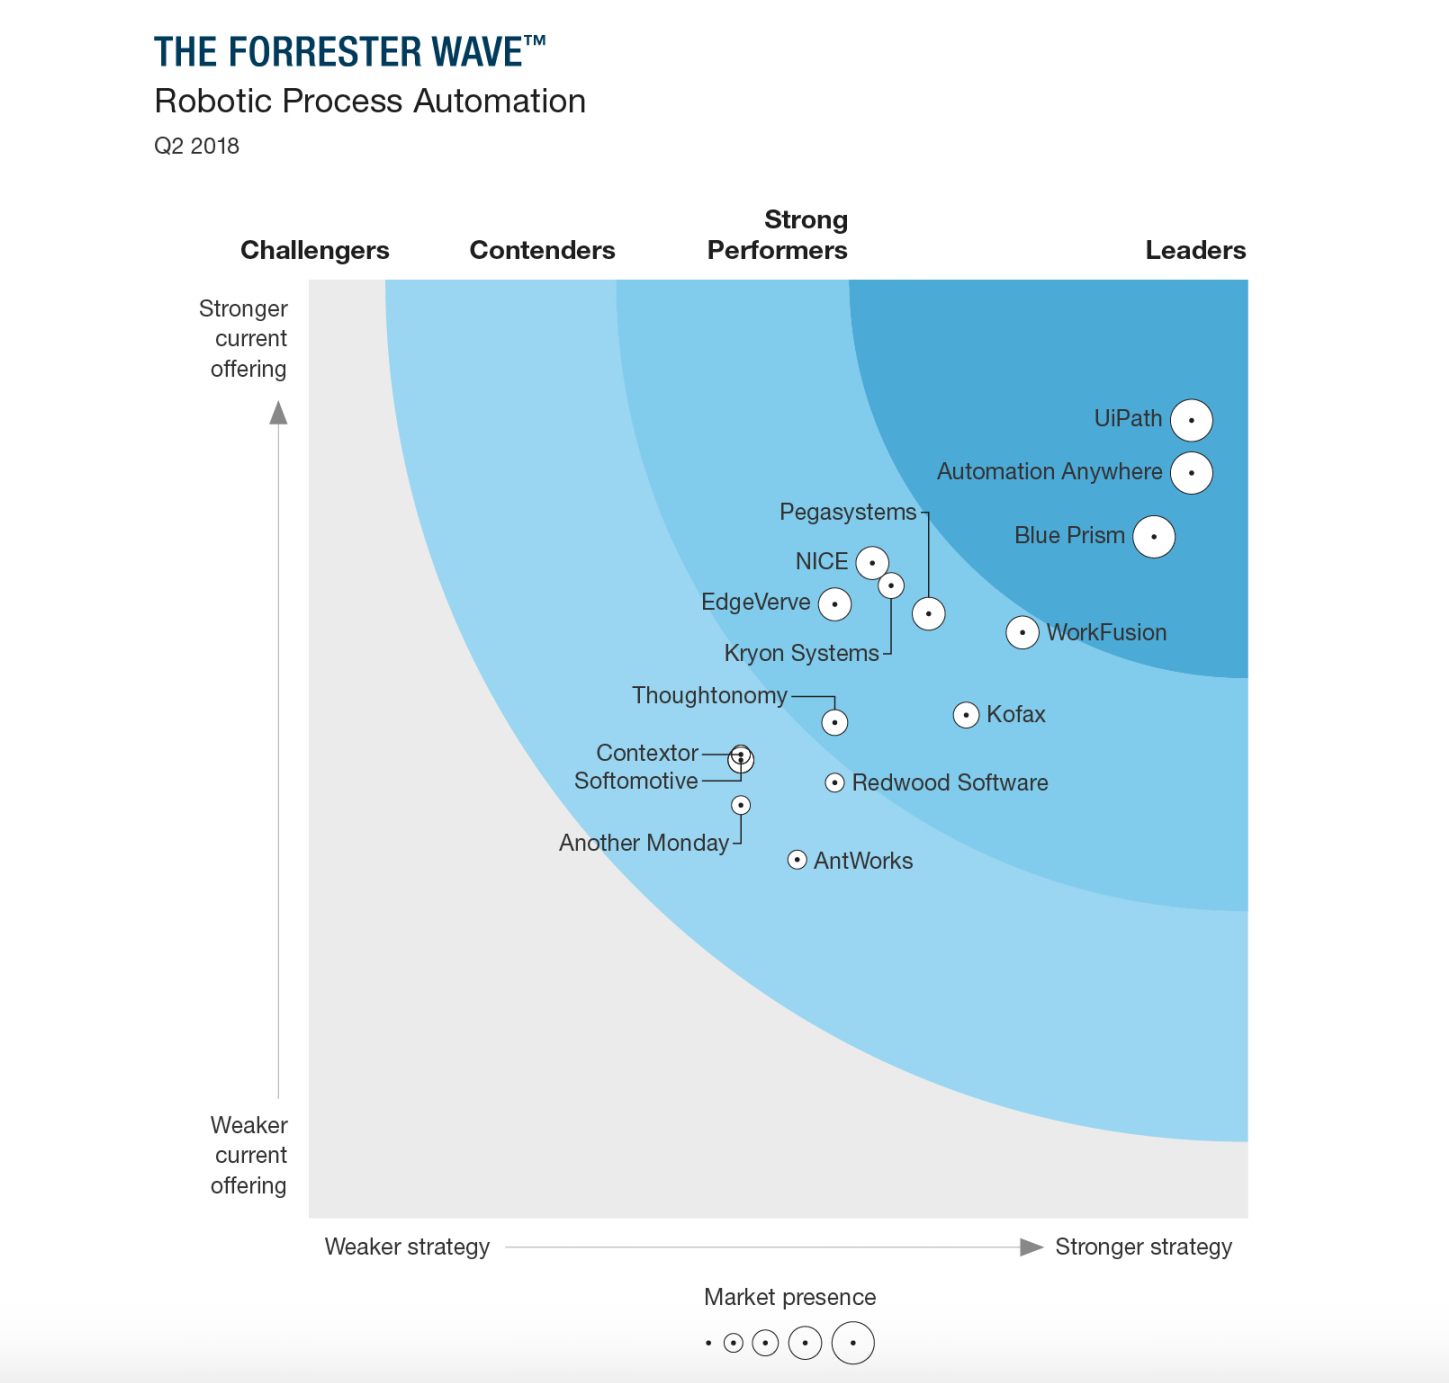 forrester-rpa-2018